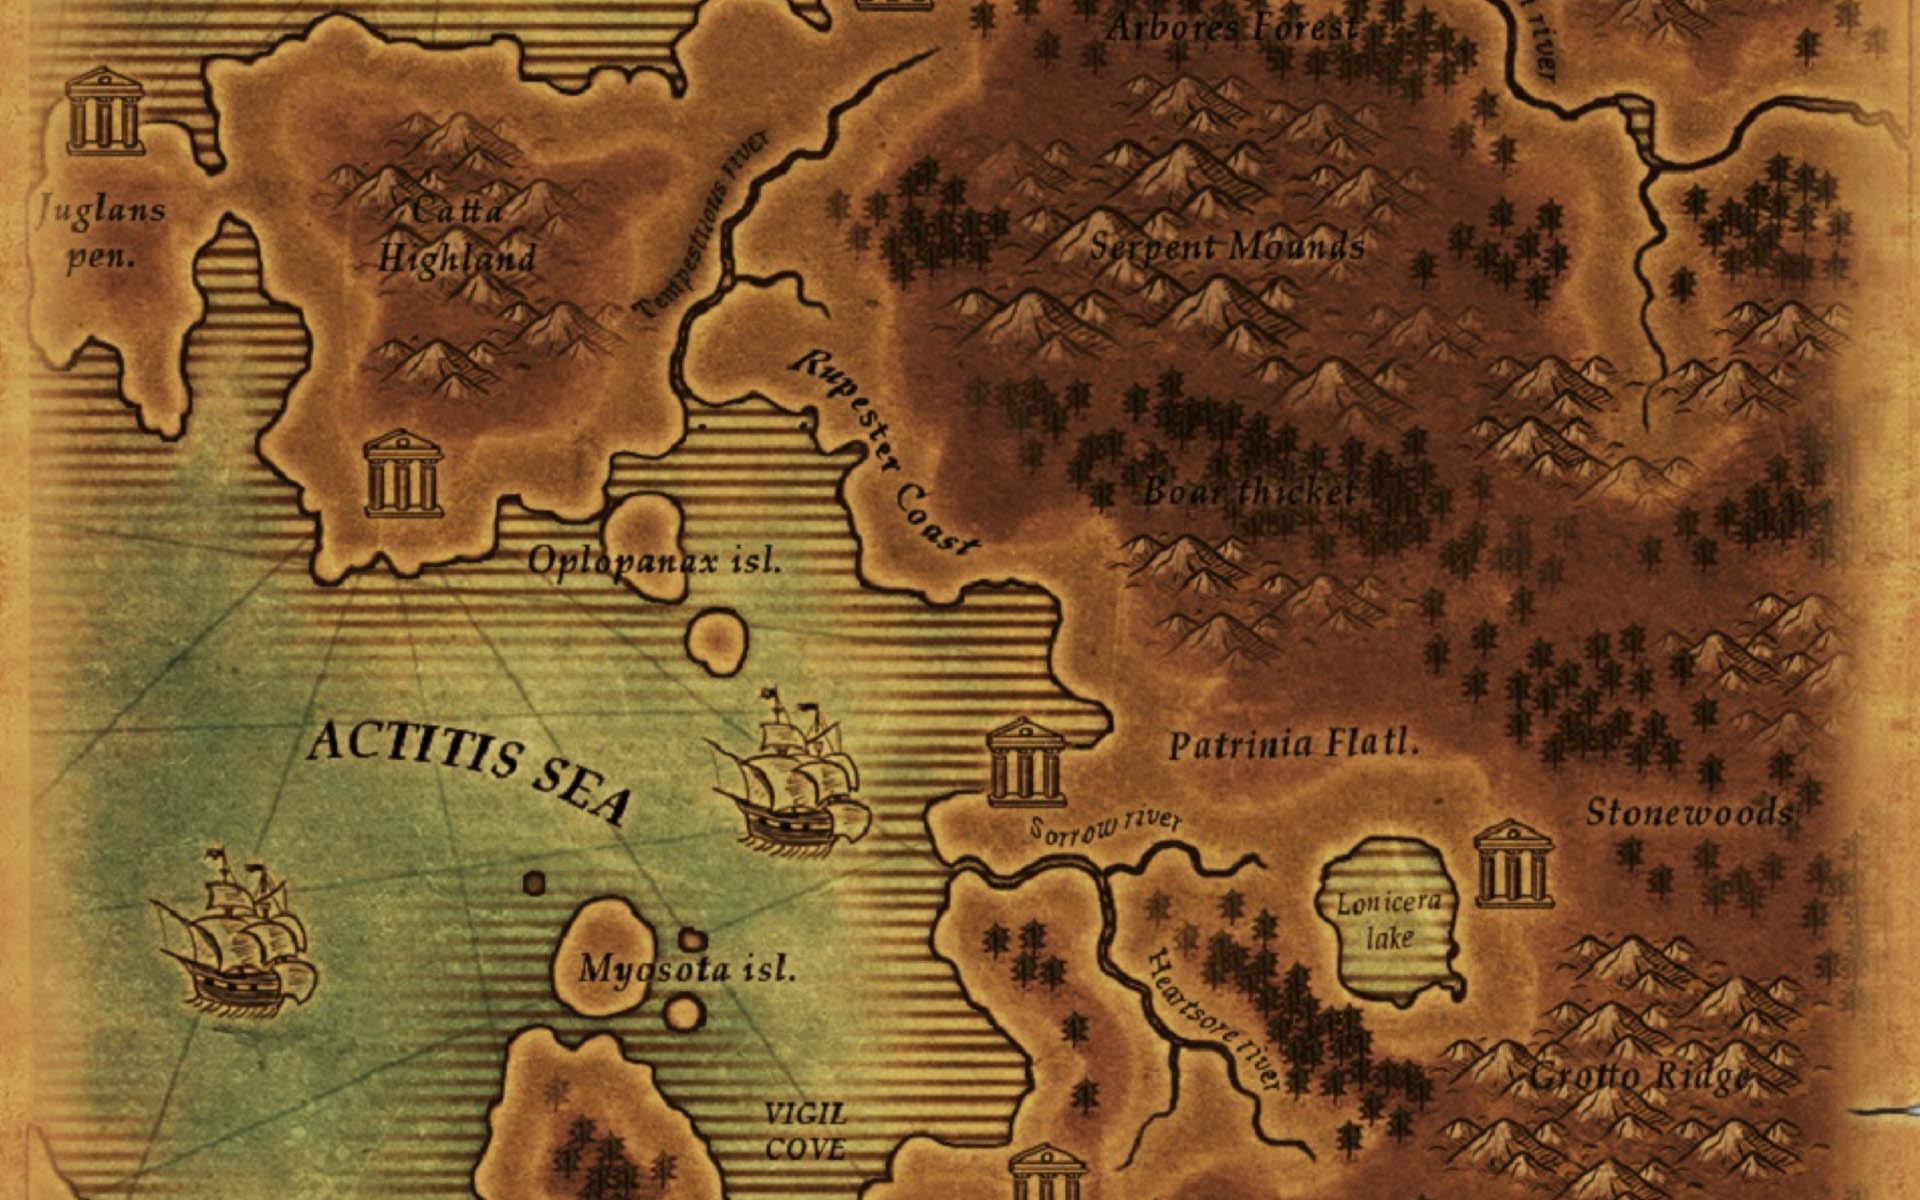 MetaGold's War of Magi Game Demo Now Available on Android ... on robbers map, maginot line map, princess map, adventure map, google map, disney's map, mtg map, mavs map, mischief map,